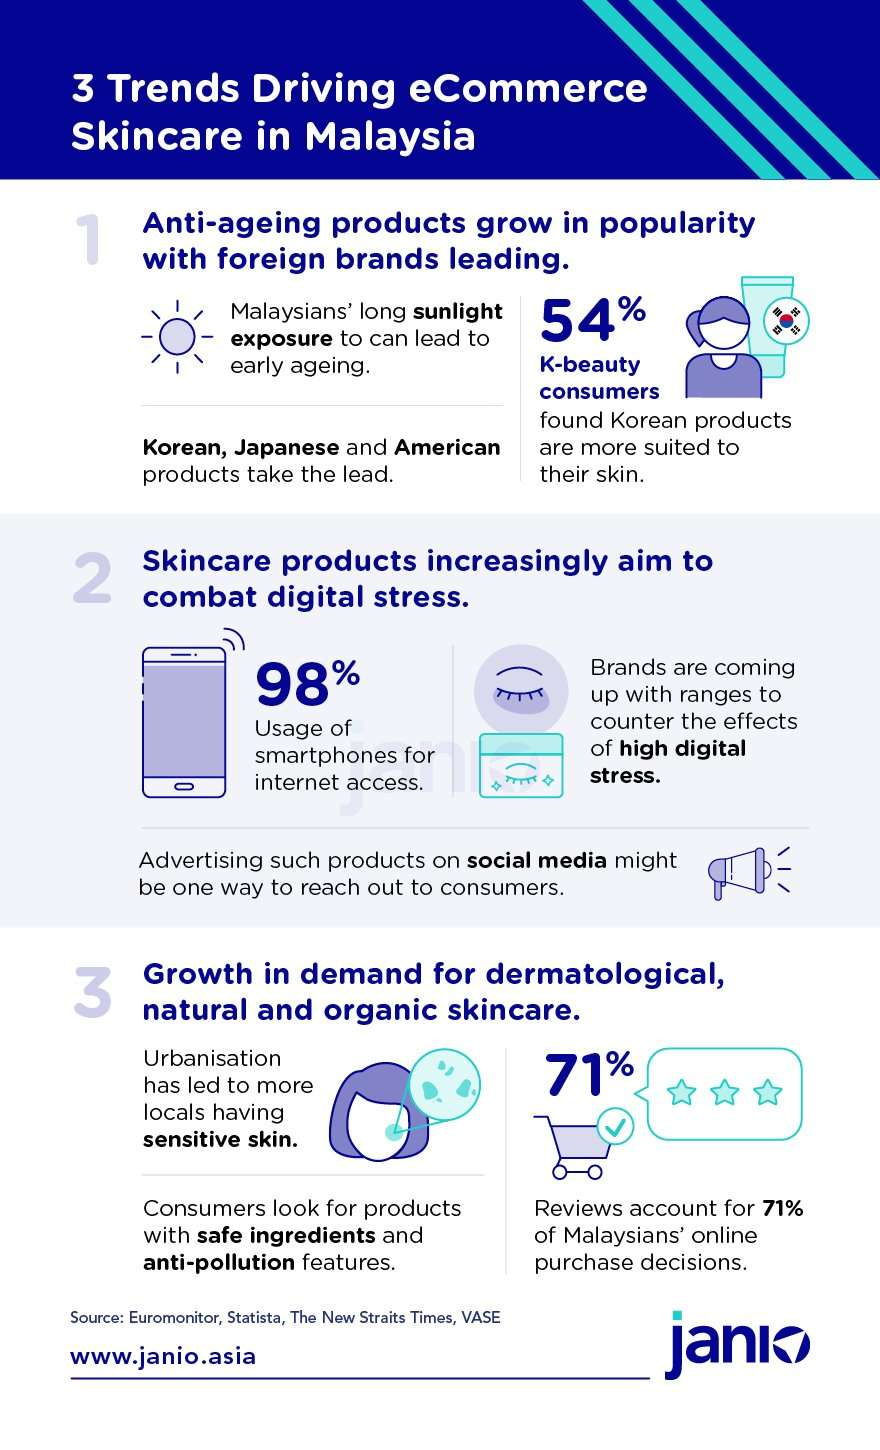 Infographic 3 Trends Driving eCommerce Skincare in MY - anti ageing is becoming popular, skincare products aim to combat digital stress, growth in demand for natural and organic skincare